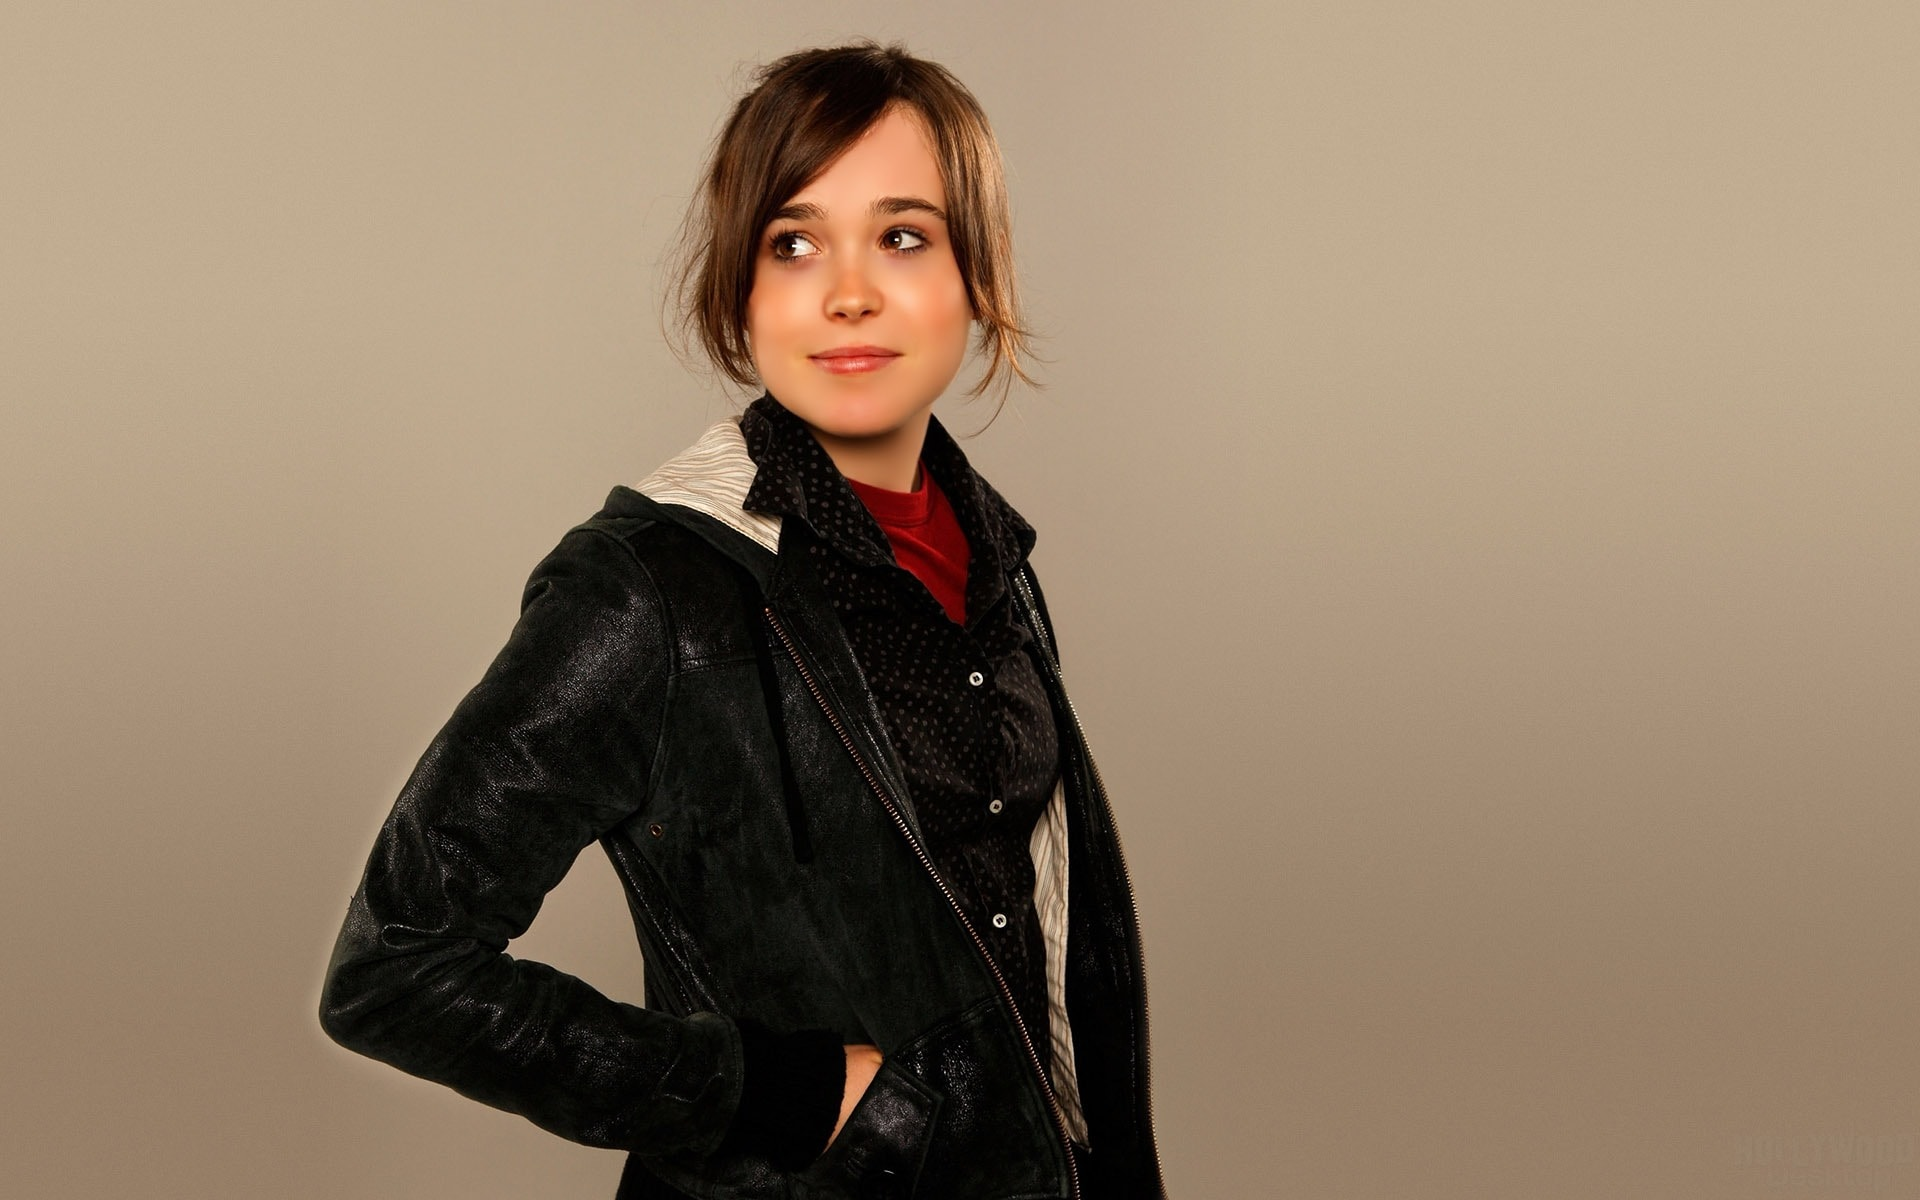 Ellen Page HQ wallpapers